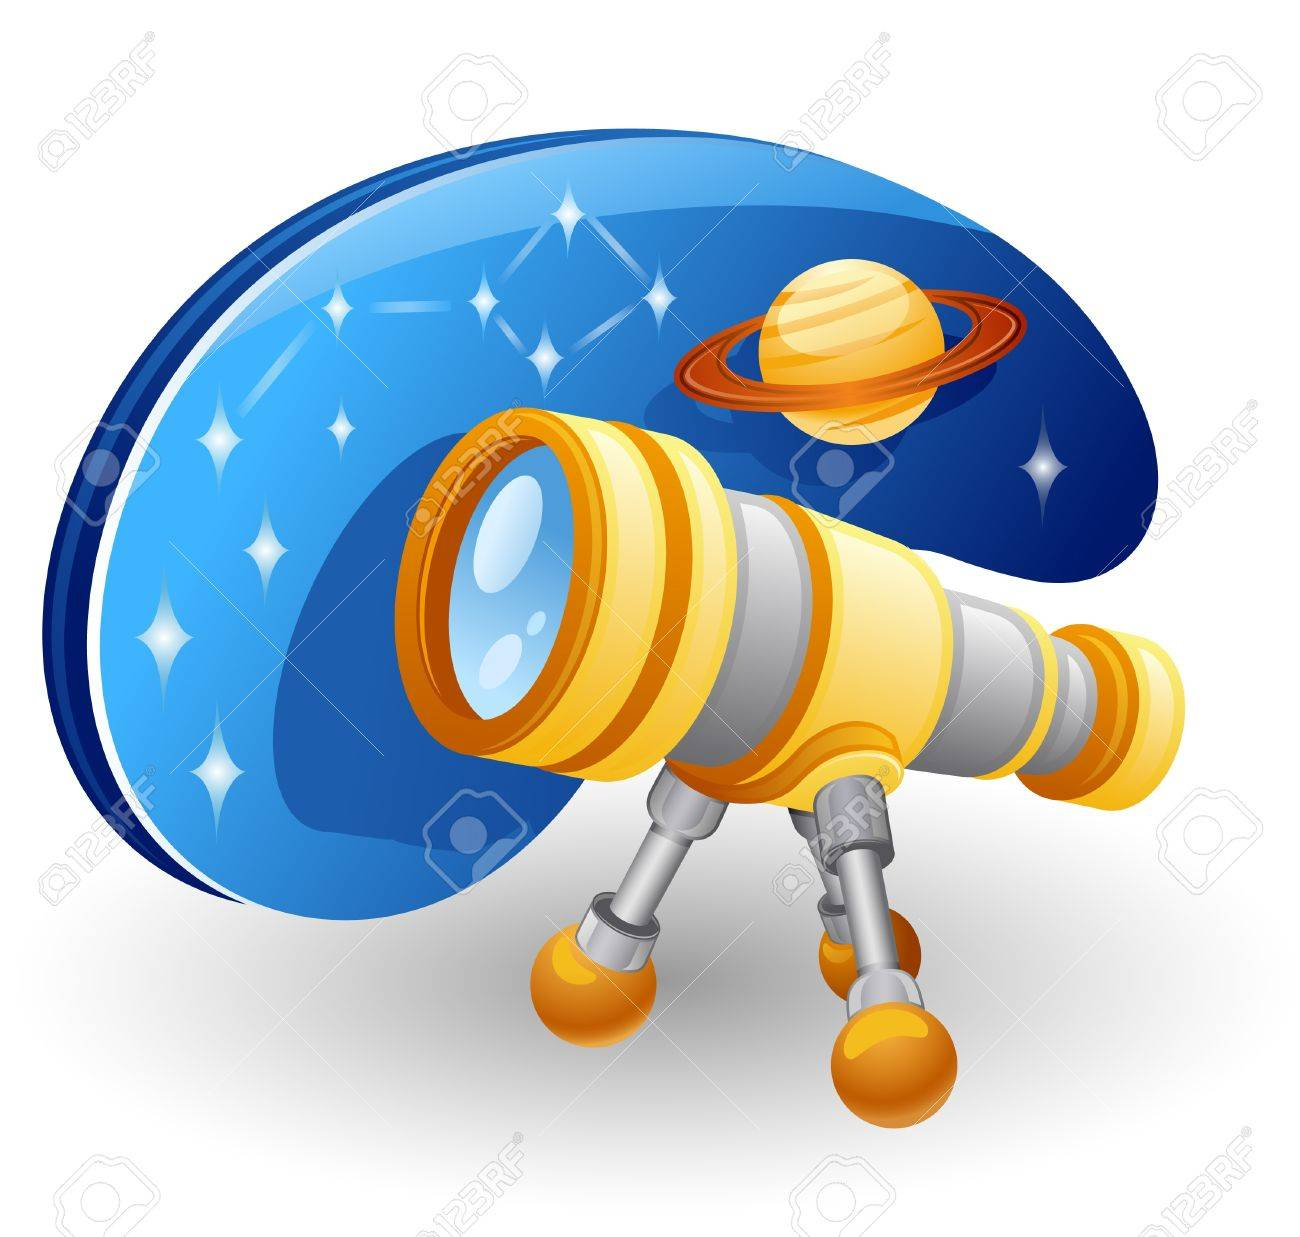 Telescope in front of star sky and Jupiter. Isolated on white background. Stock Vector - 10392201